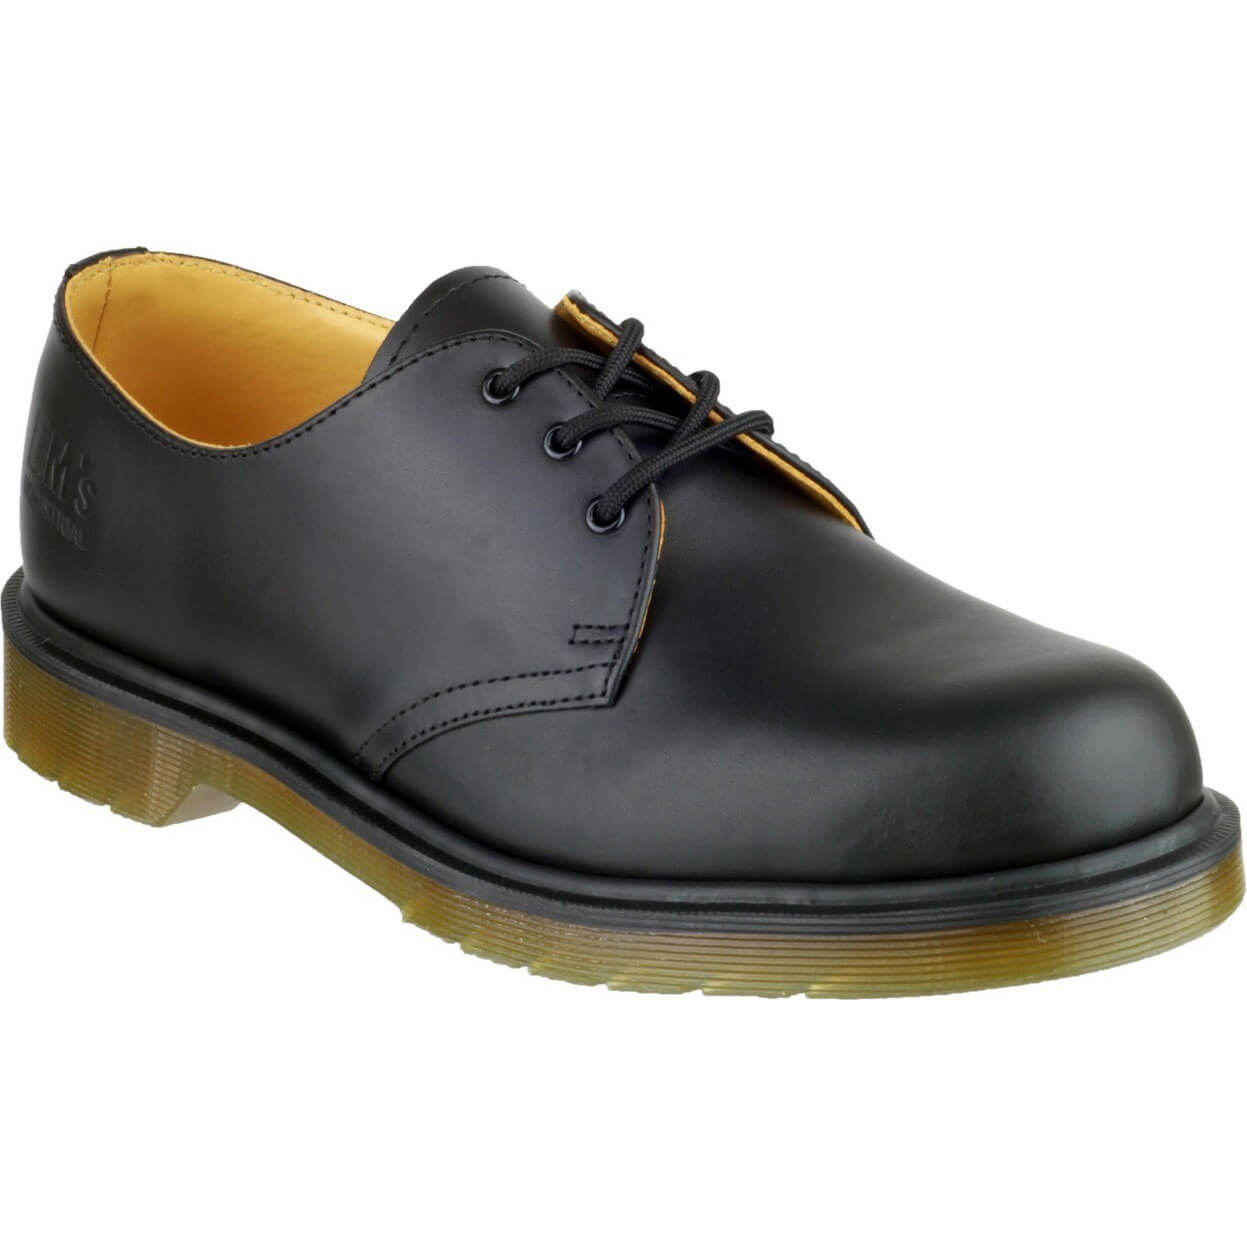 Image of Dr Martens B8249 Lace-Up Leather Shoe Black Size 12